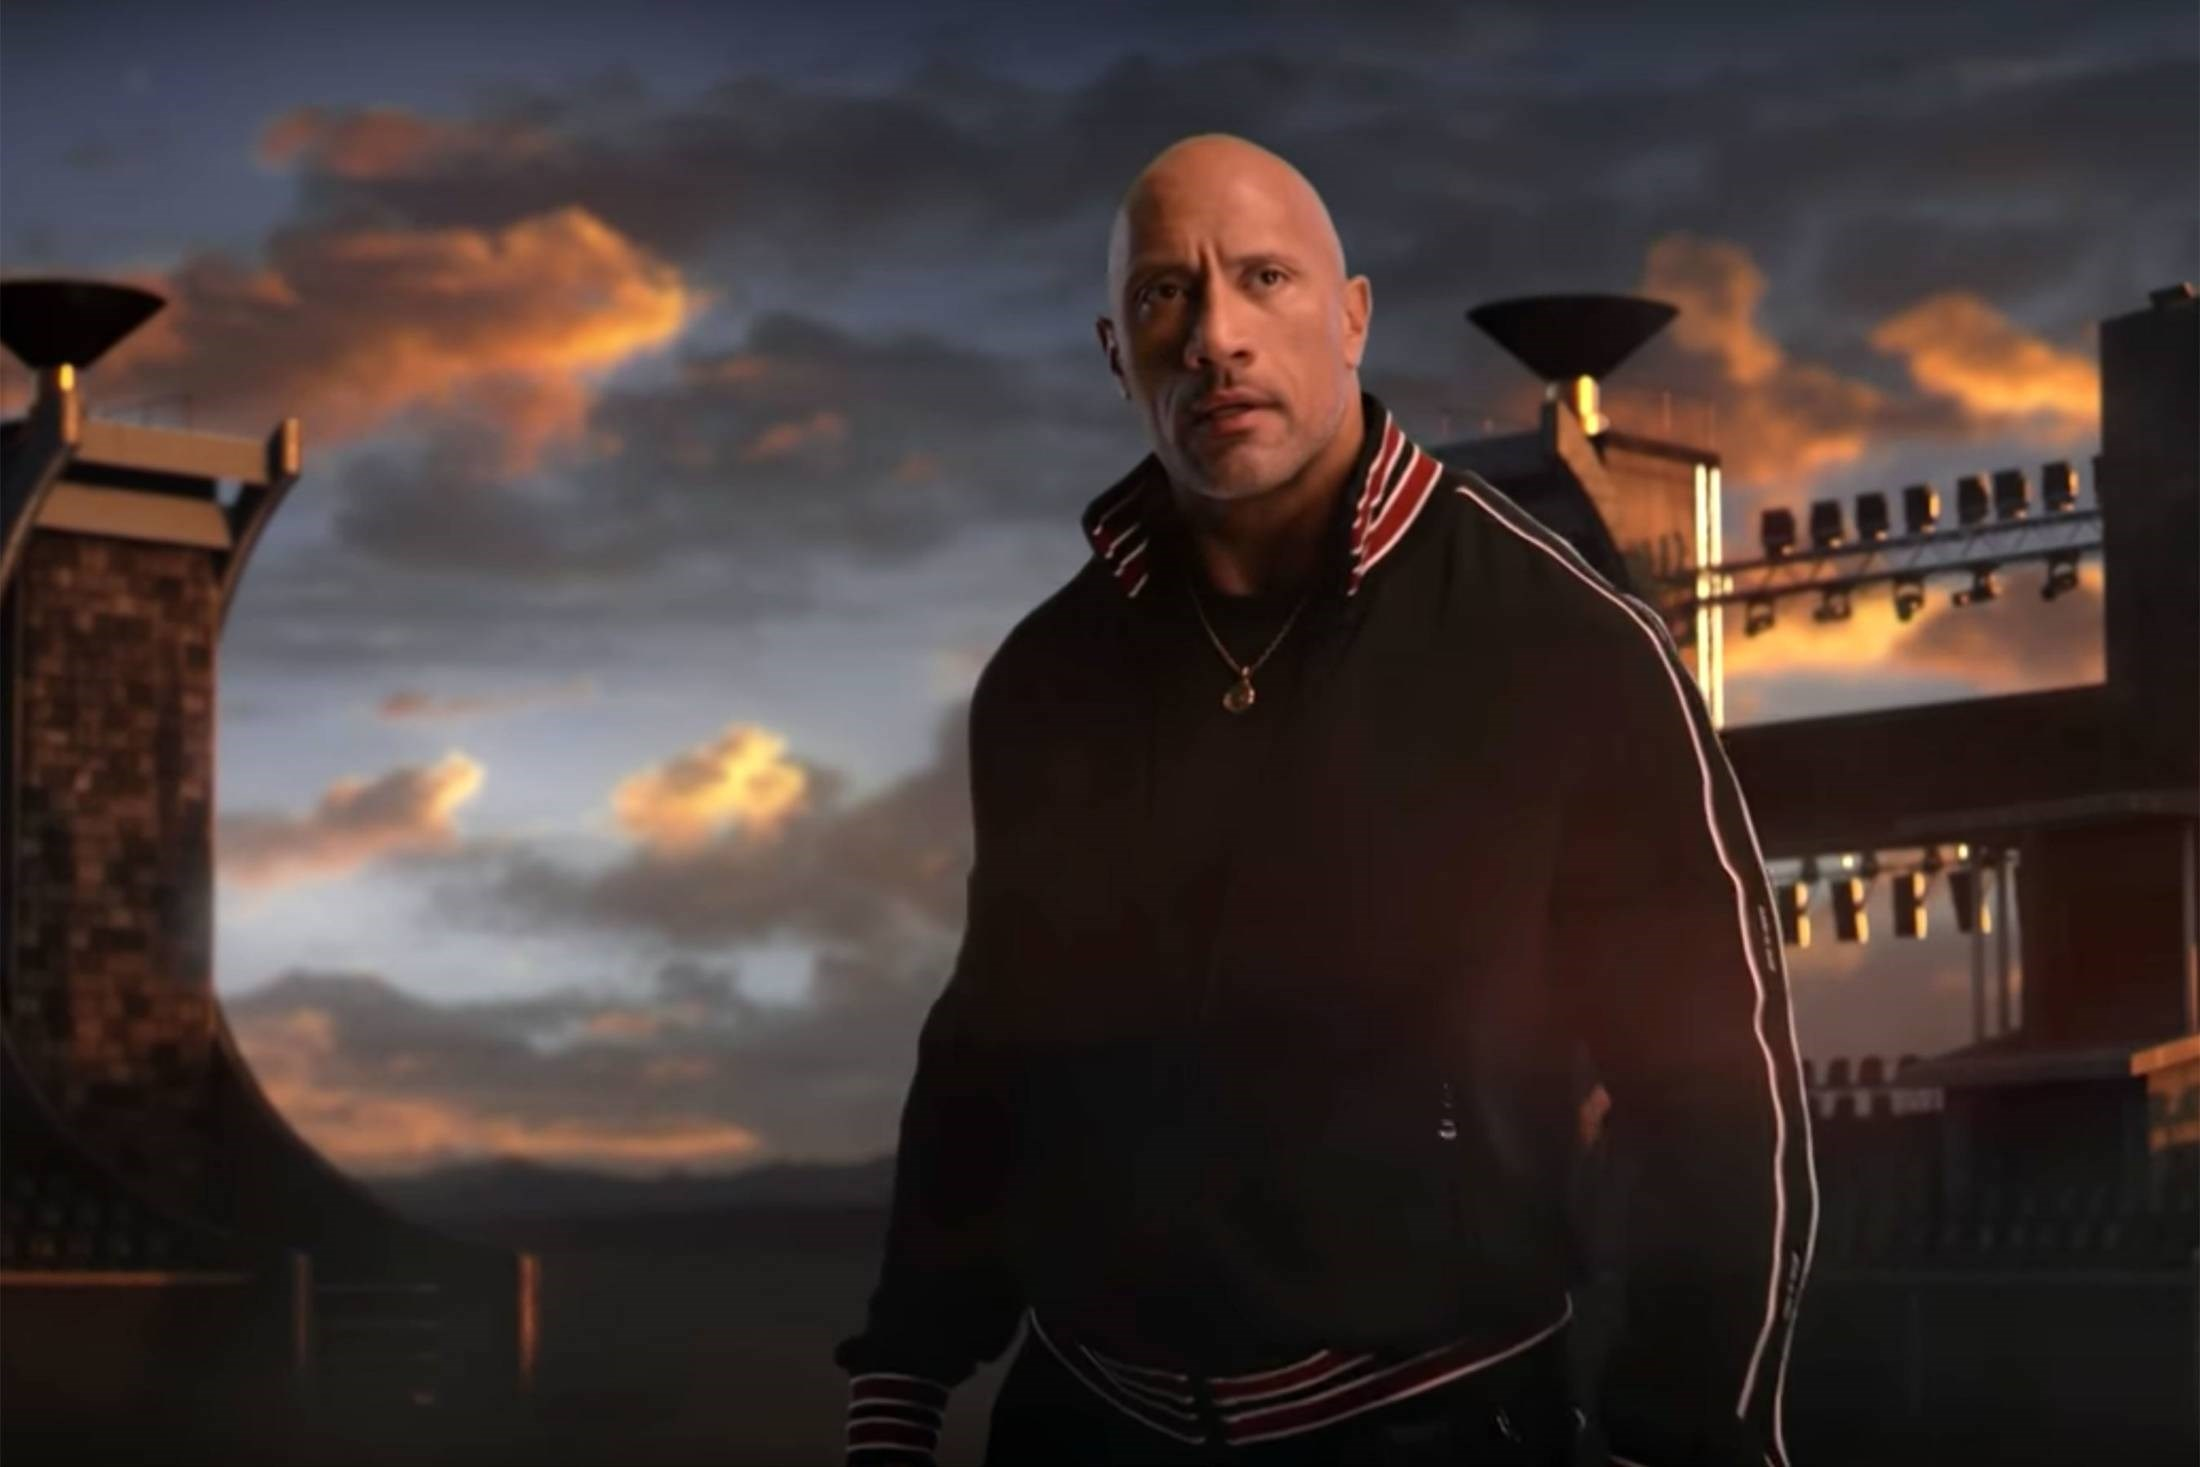 Dwayne 'The Rock' Johnson: Titan Games Competitors Will Be Tested on 'Every Fiber of Their Being'